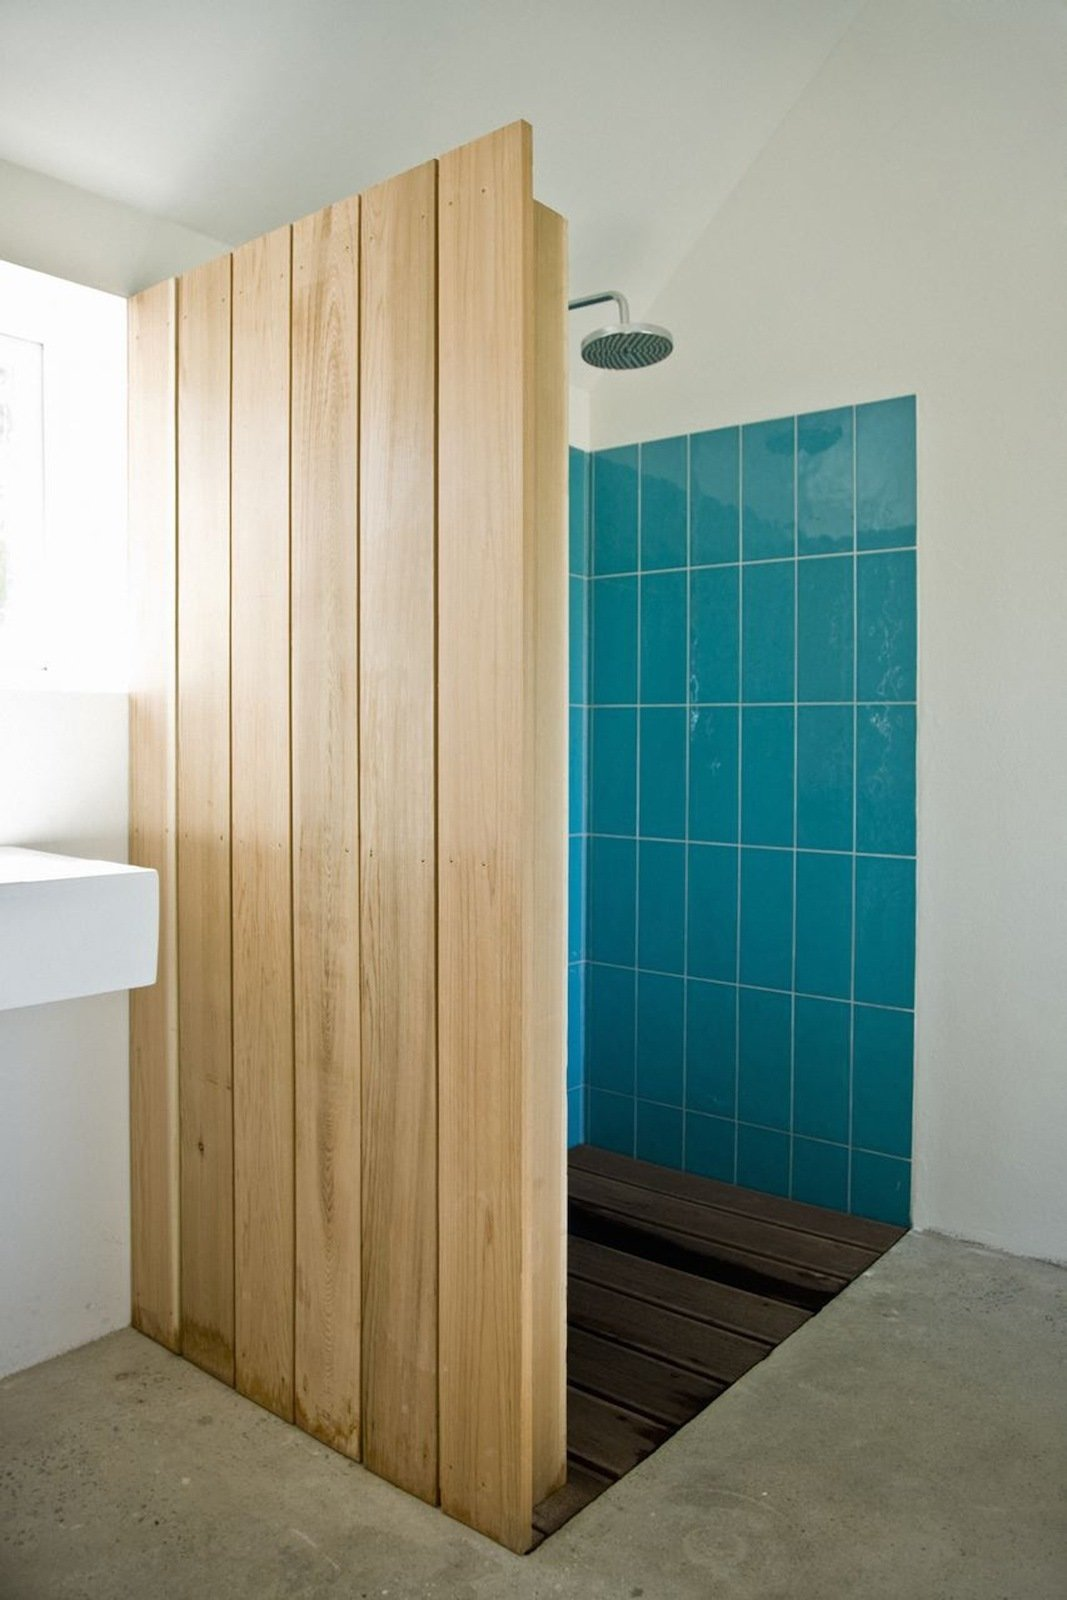 """Colored tiles in the shower are revealed behind a cedar wood wall. """"The sound of falling water on wood and the surrounding fields form the background,"""" say the architects. """"This was our way of introducing an immaterial idea of what luxury actually could be about.""""  Barn Renovation Ideas"""